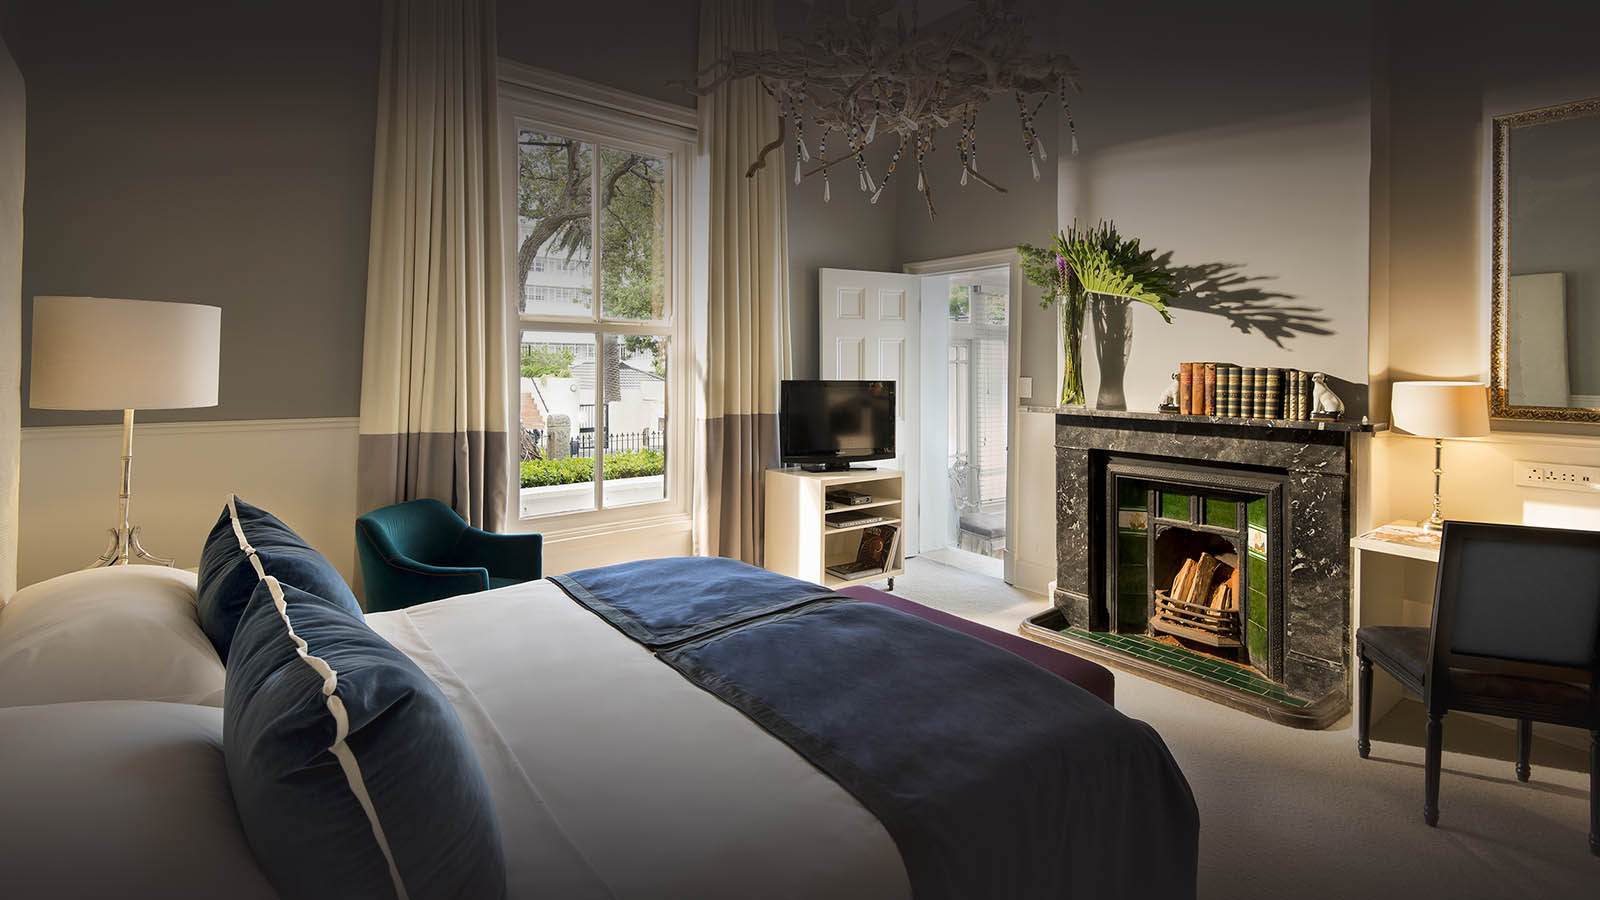 cape cadogan cape-town-lodges-south-africa-accommodation-zambia-in-style-charming-boutique-hotel-perfect-setting-classic-room